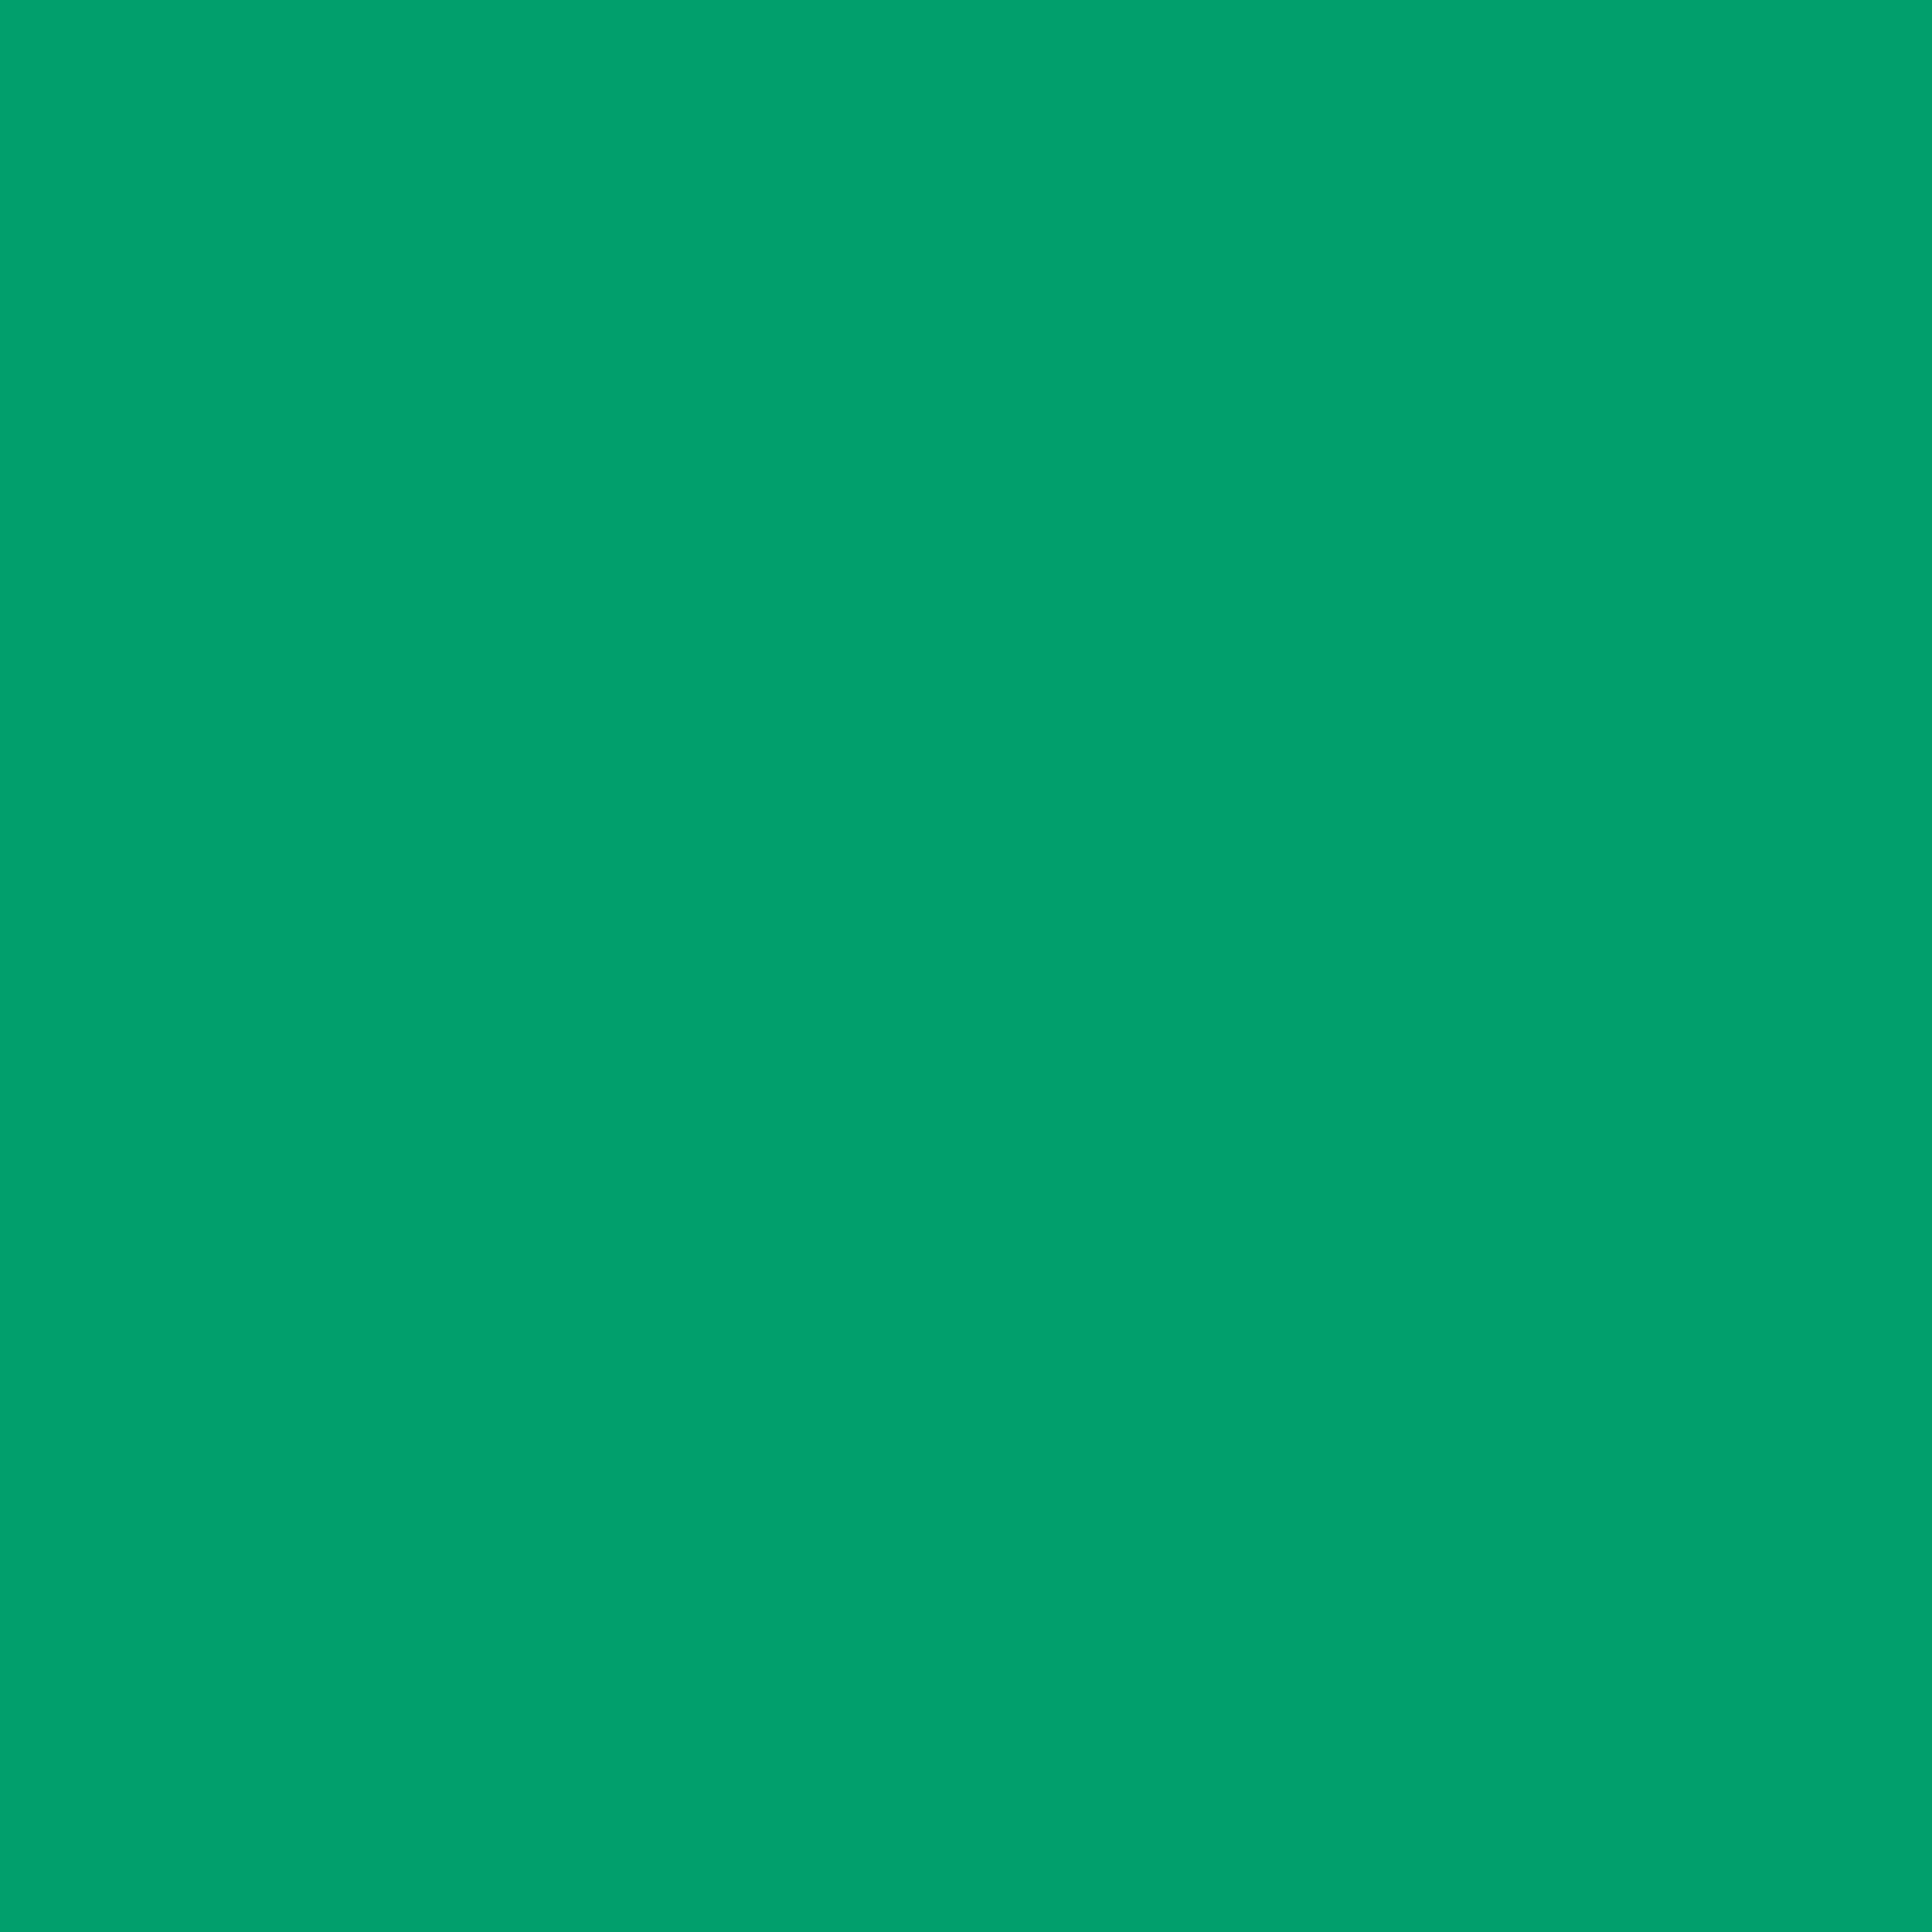 3600x3600 Green NCS Solid Color Background